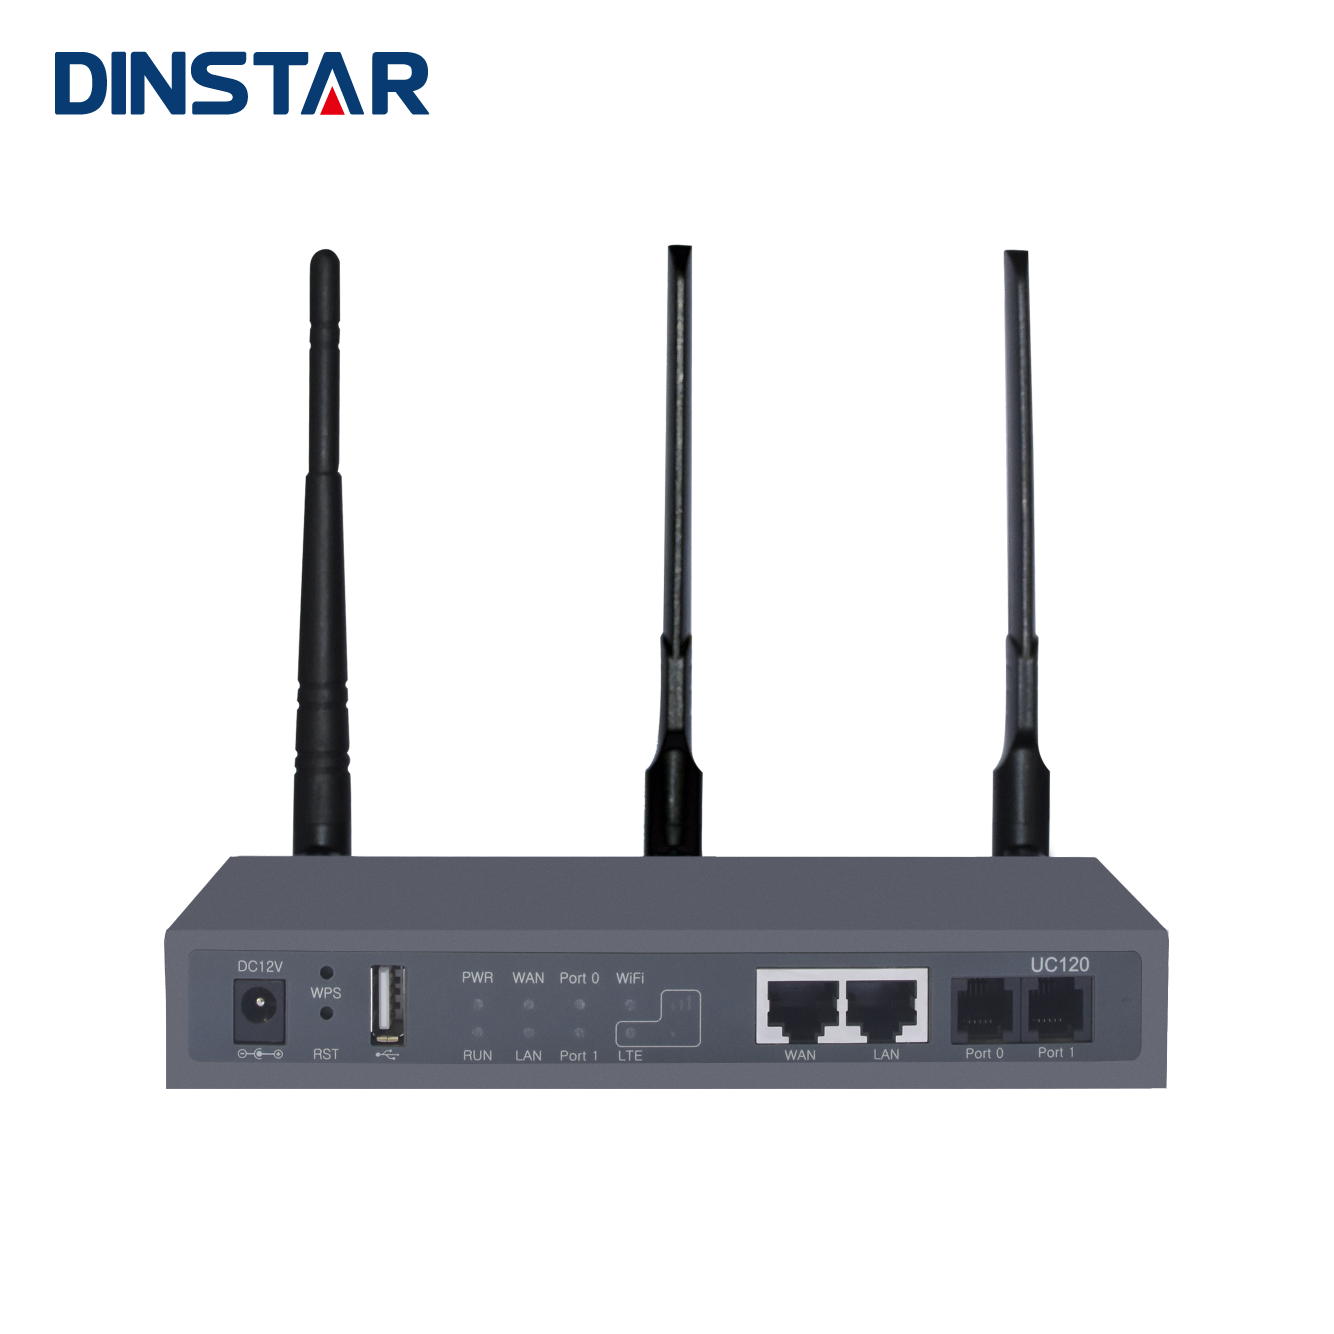 Dinstar Wireless USB GSM 4G IP PBX VOIP SIP Server dengan Wifi Router